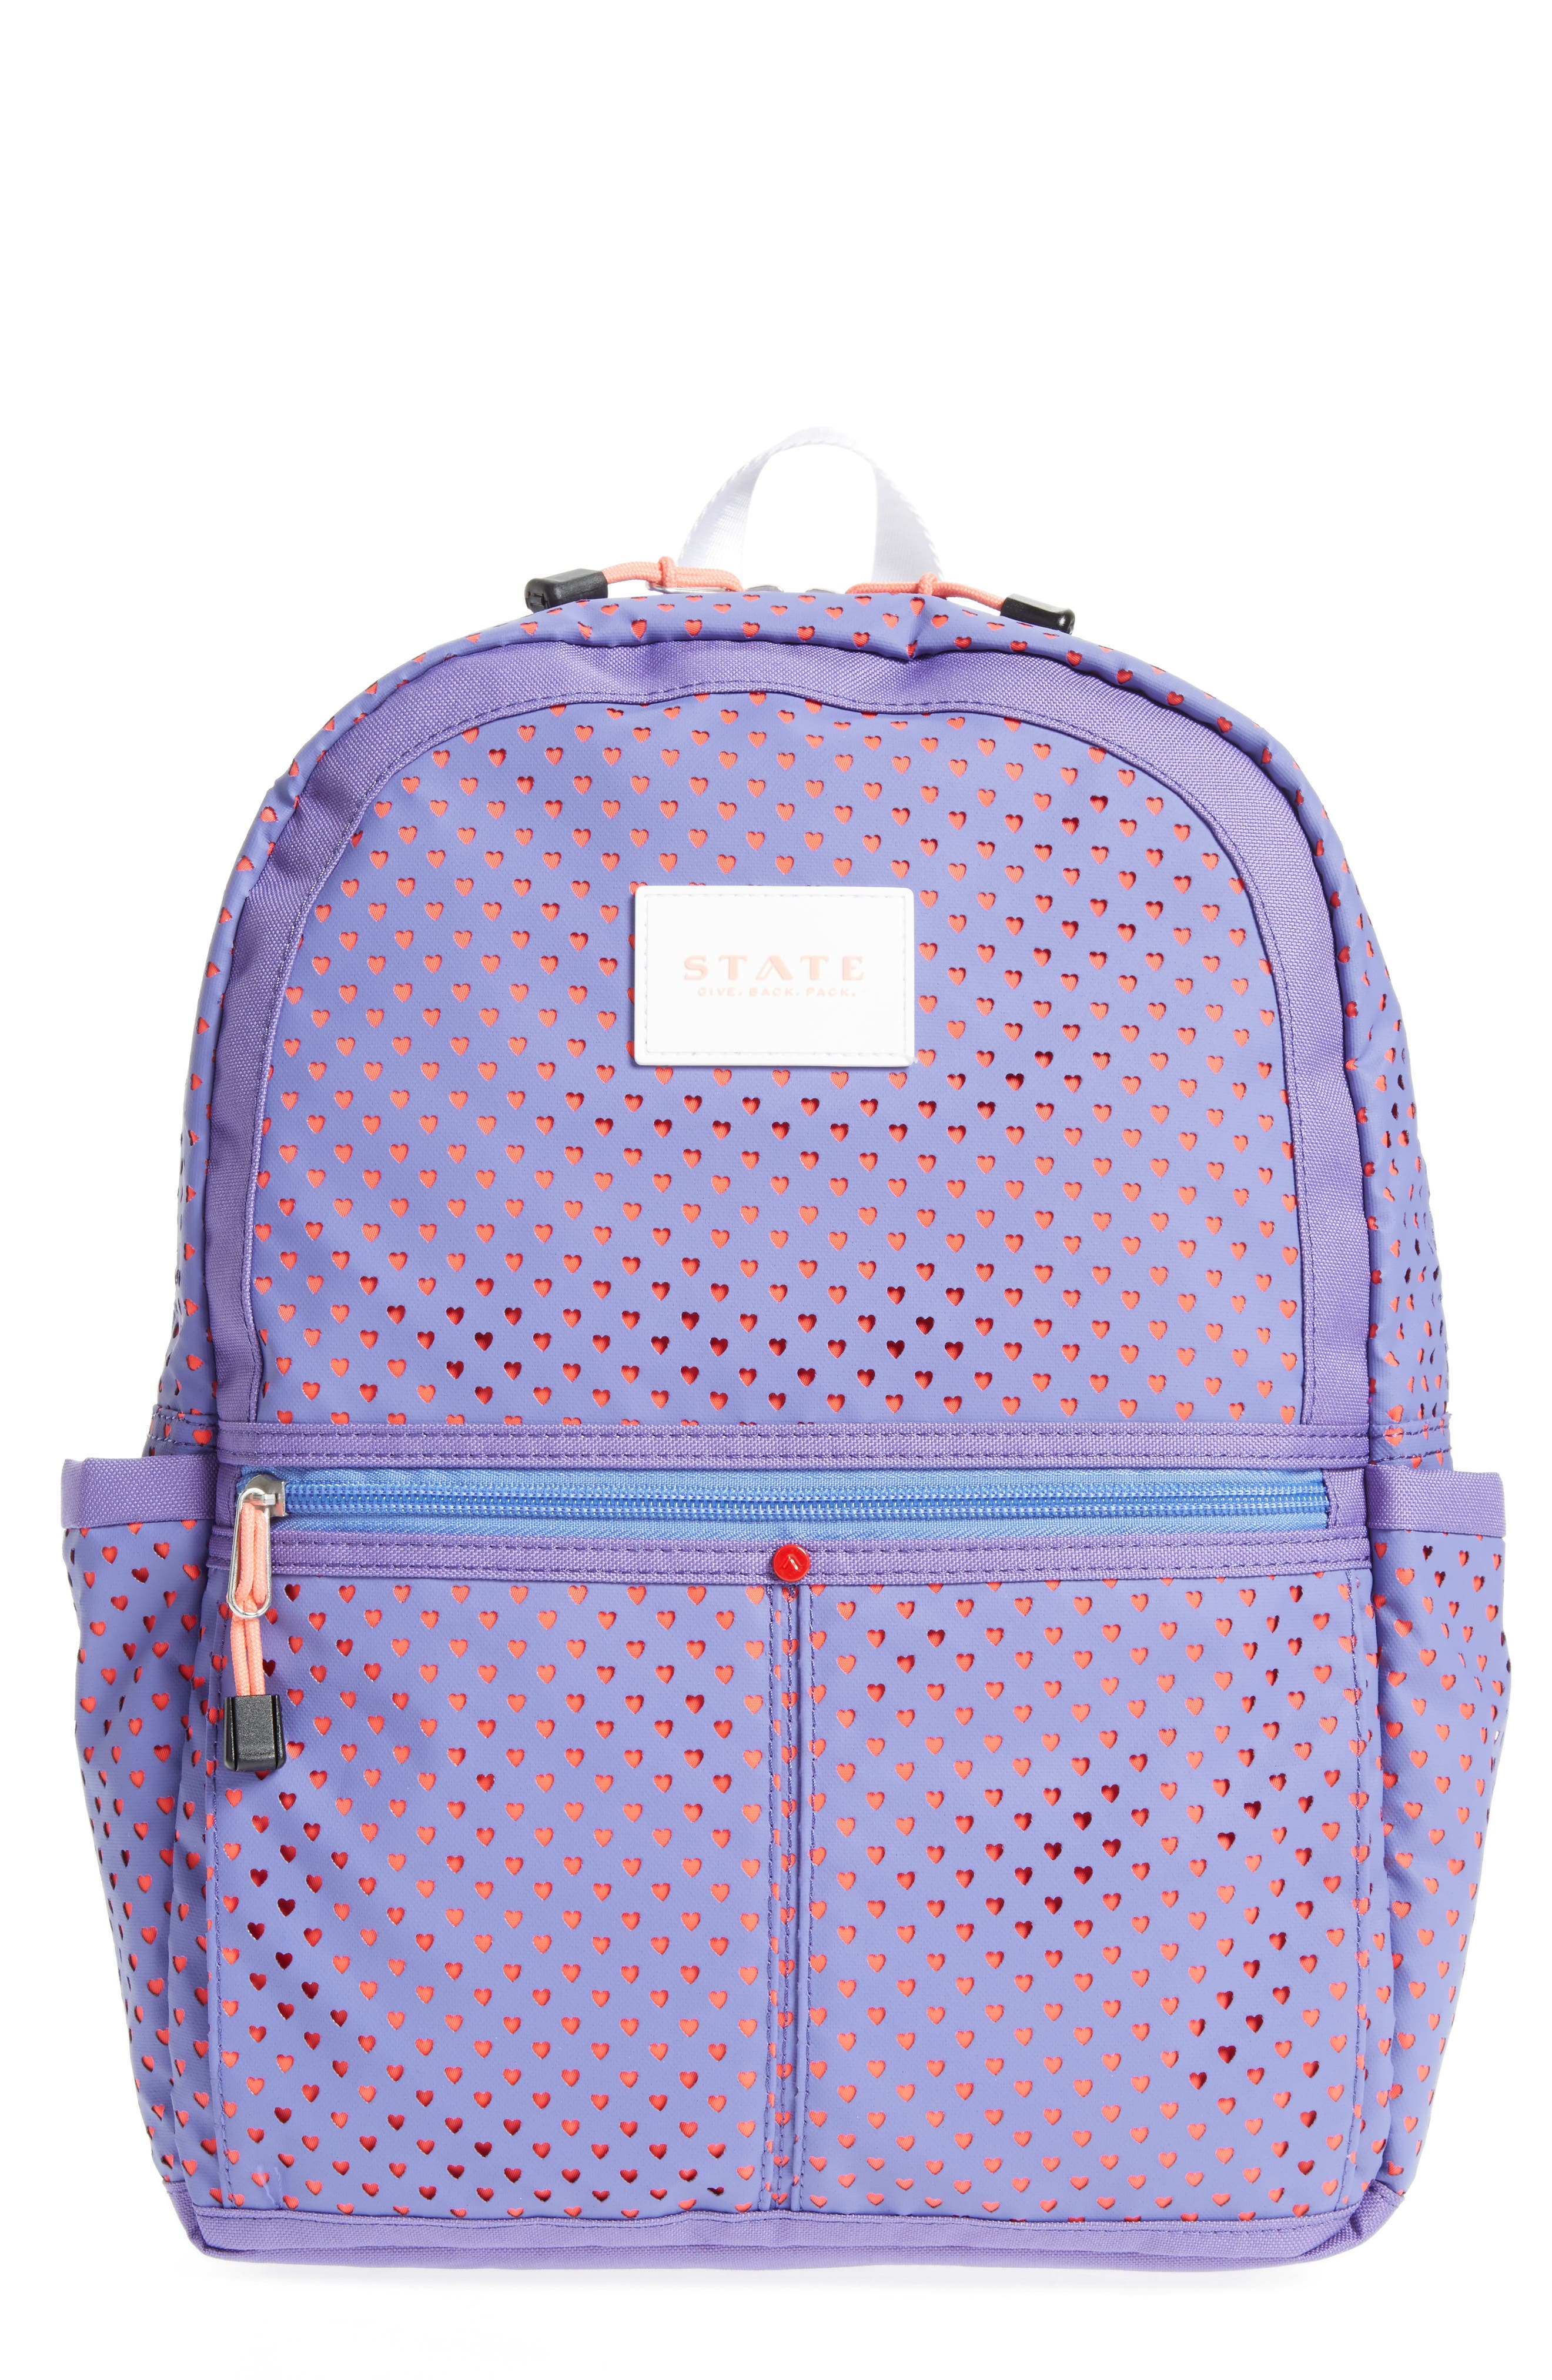 STATE Bags Perforated Hearts Kane Backpack (Kids)